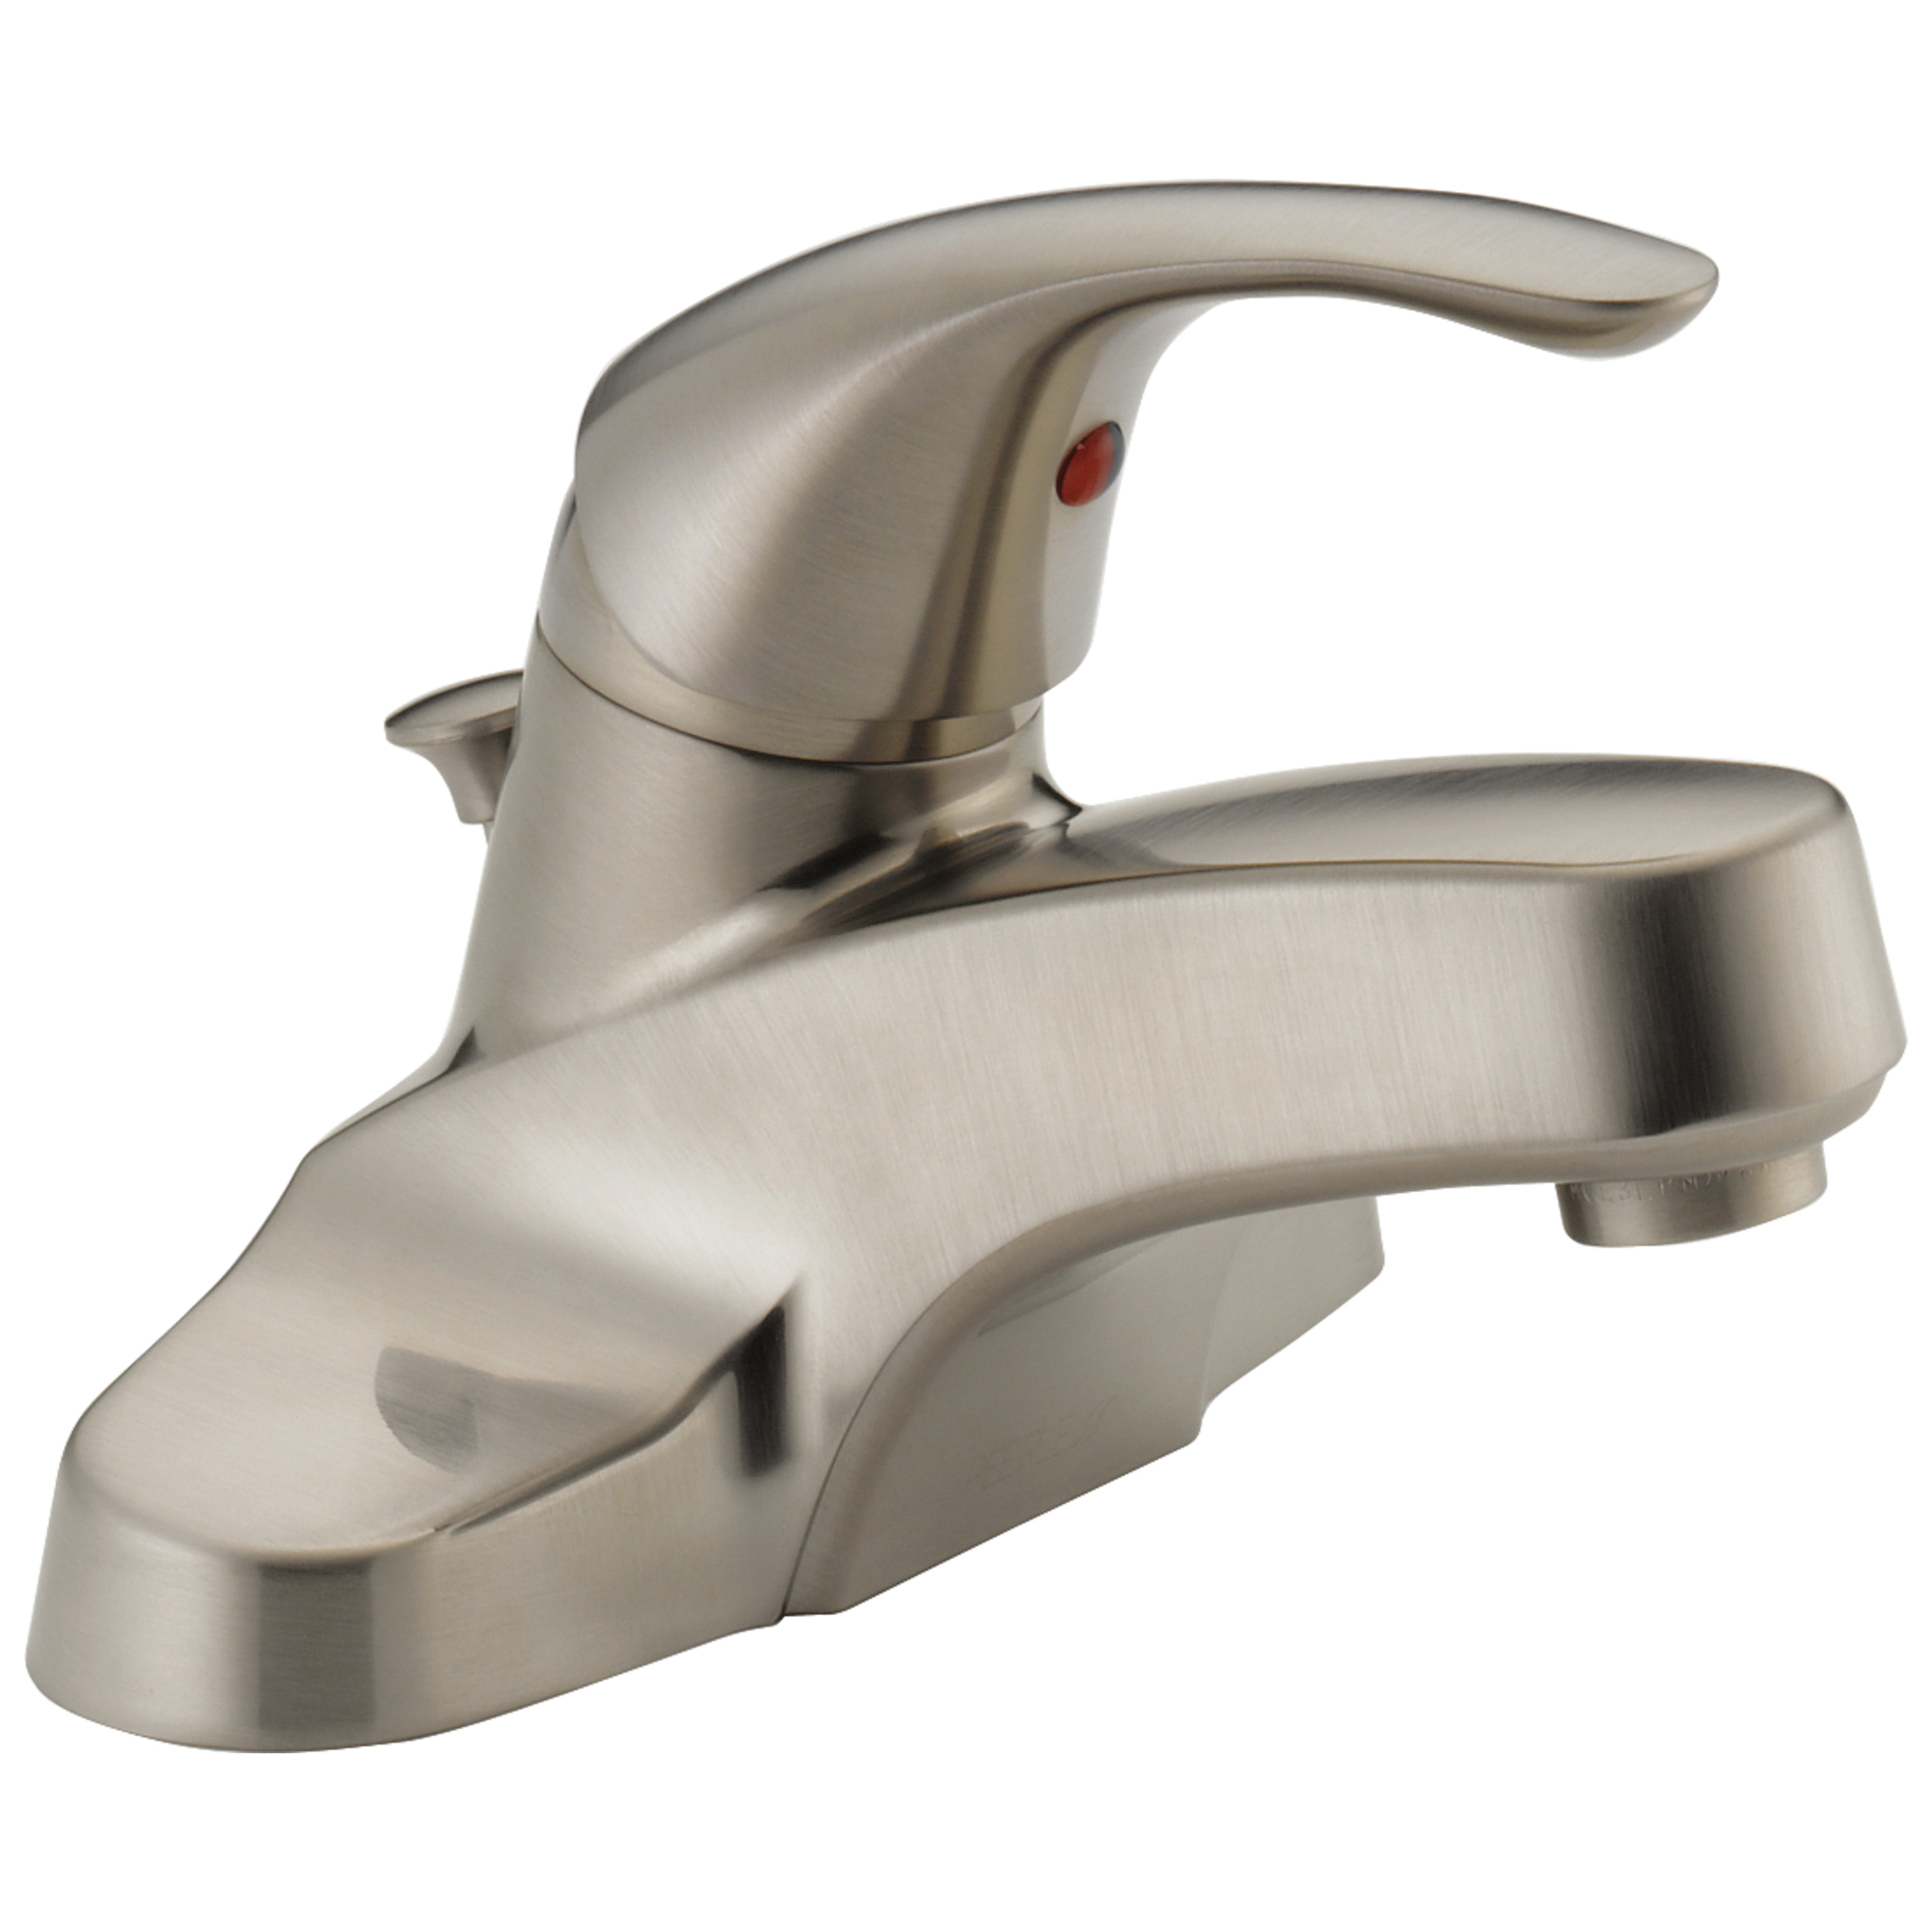 Peerless® P188620LF-BN Centerset Lavatory Faucet, Brushed Nickel, 1 Handles, Pop-Up Drain, 1.5 gpm